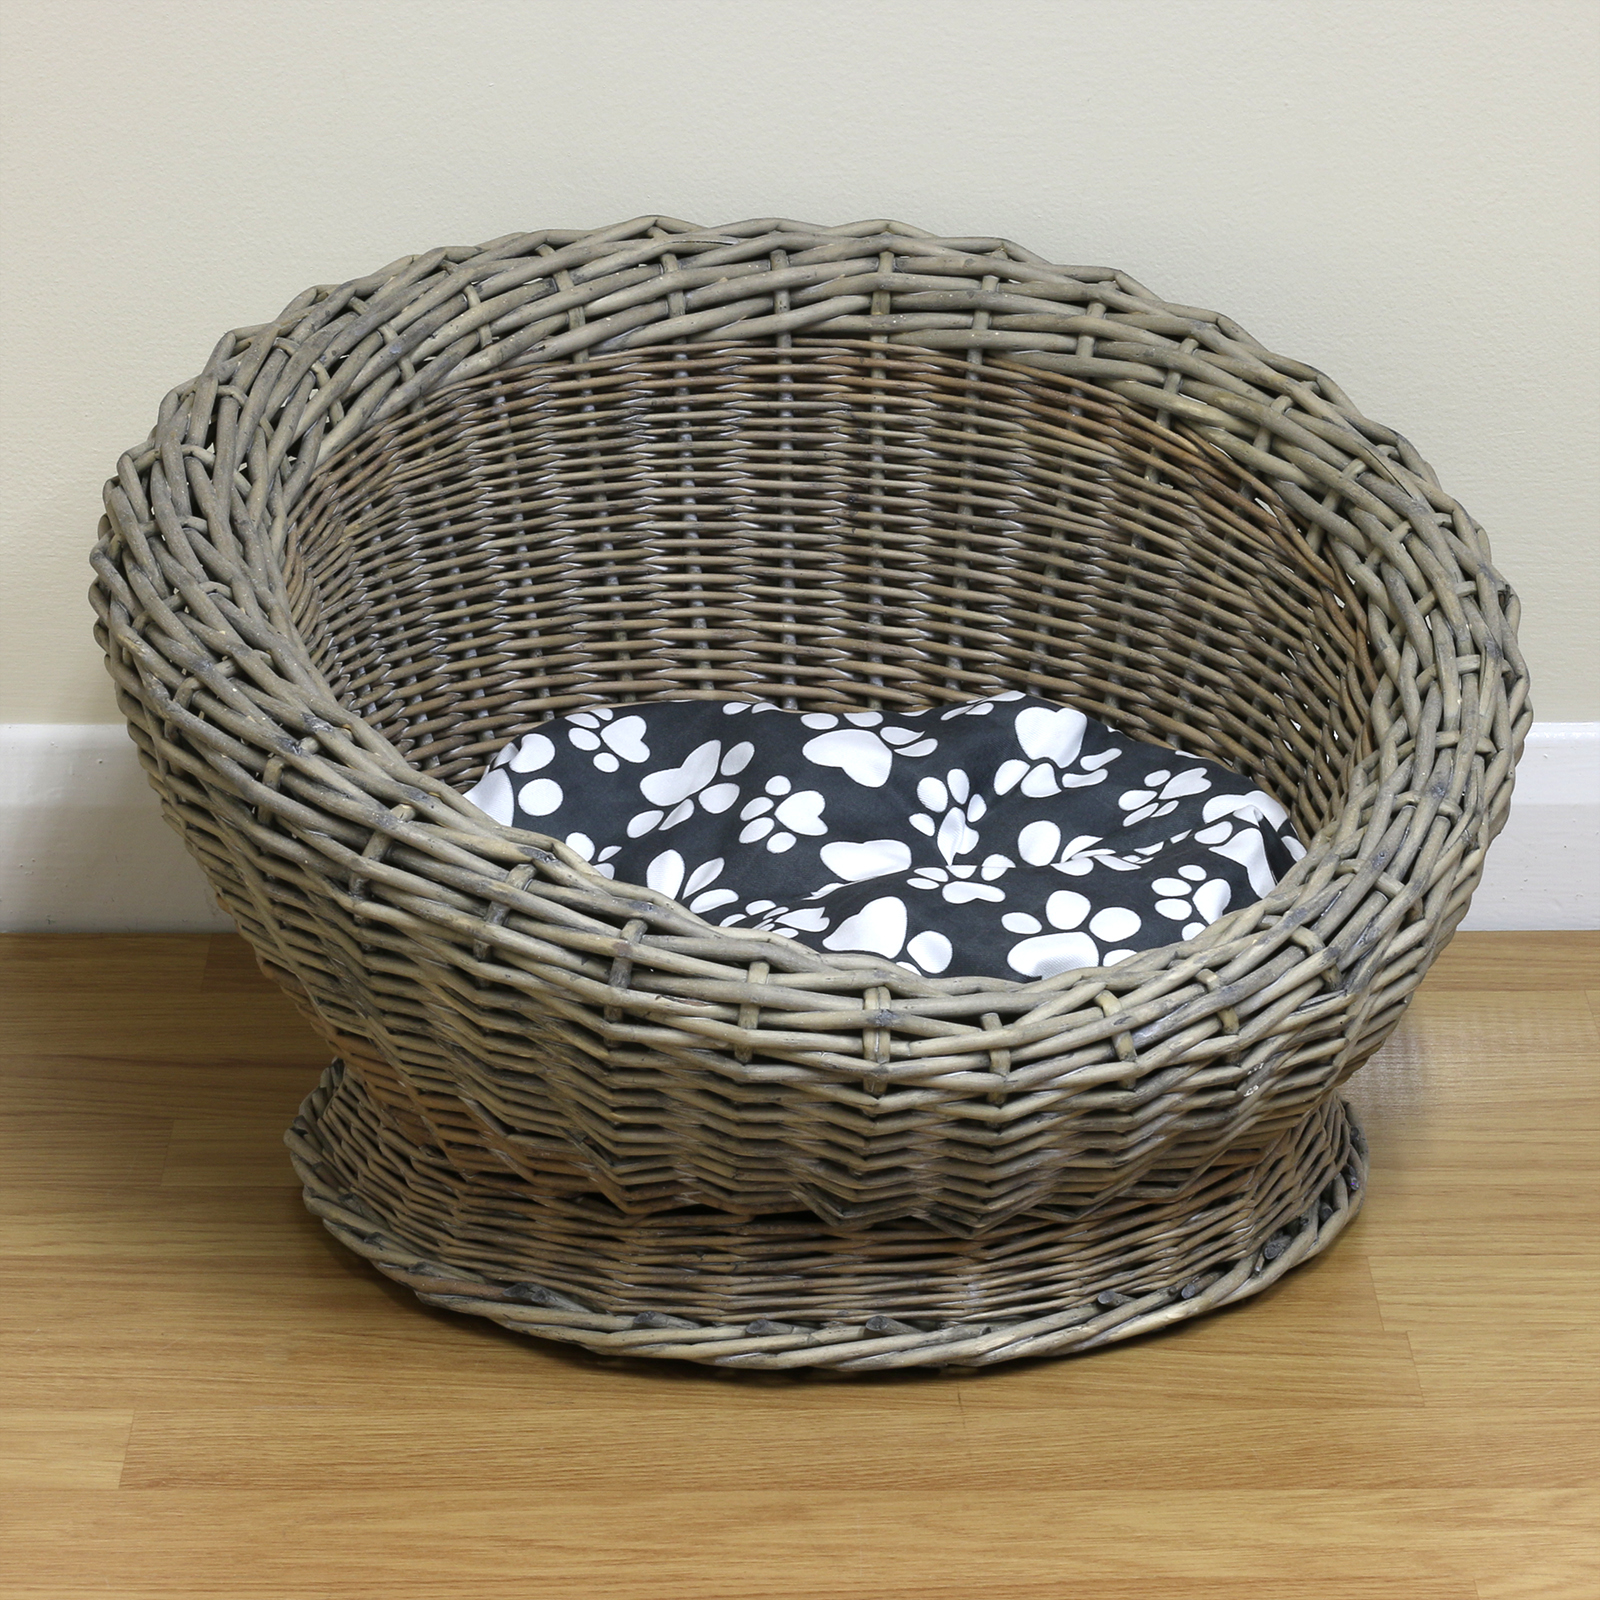 Small Round Woven Natural Wicker Shabby Chic Pet Bed